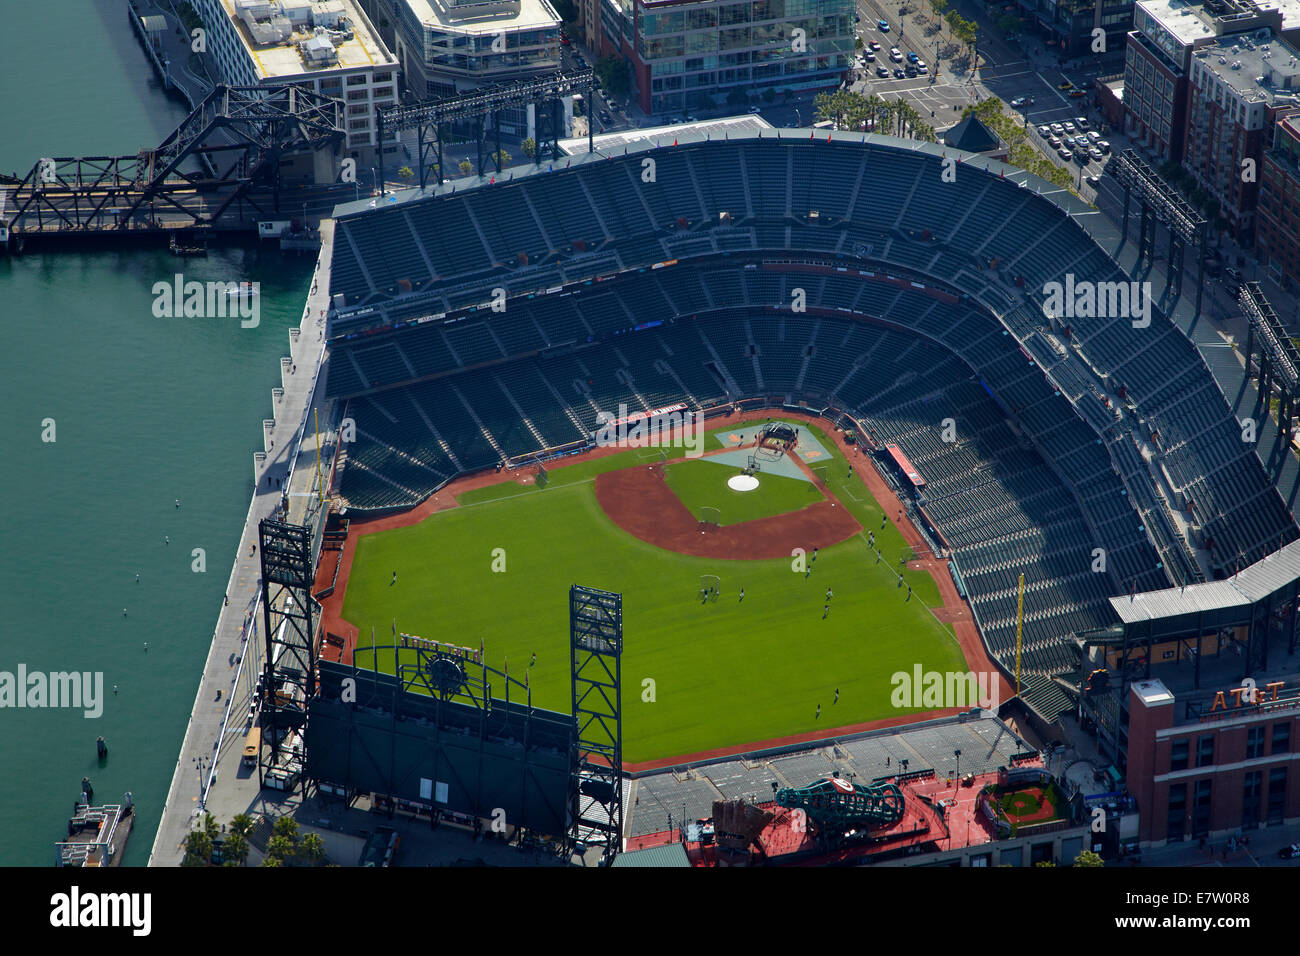 AT&T Park / Giants Ballpark (home of San Francisco Giants baseball team), San Francisco, California, USA - aerial - Stock Image